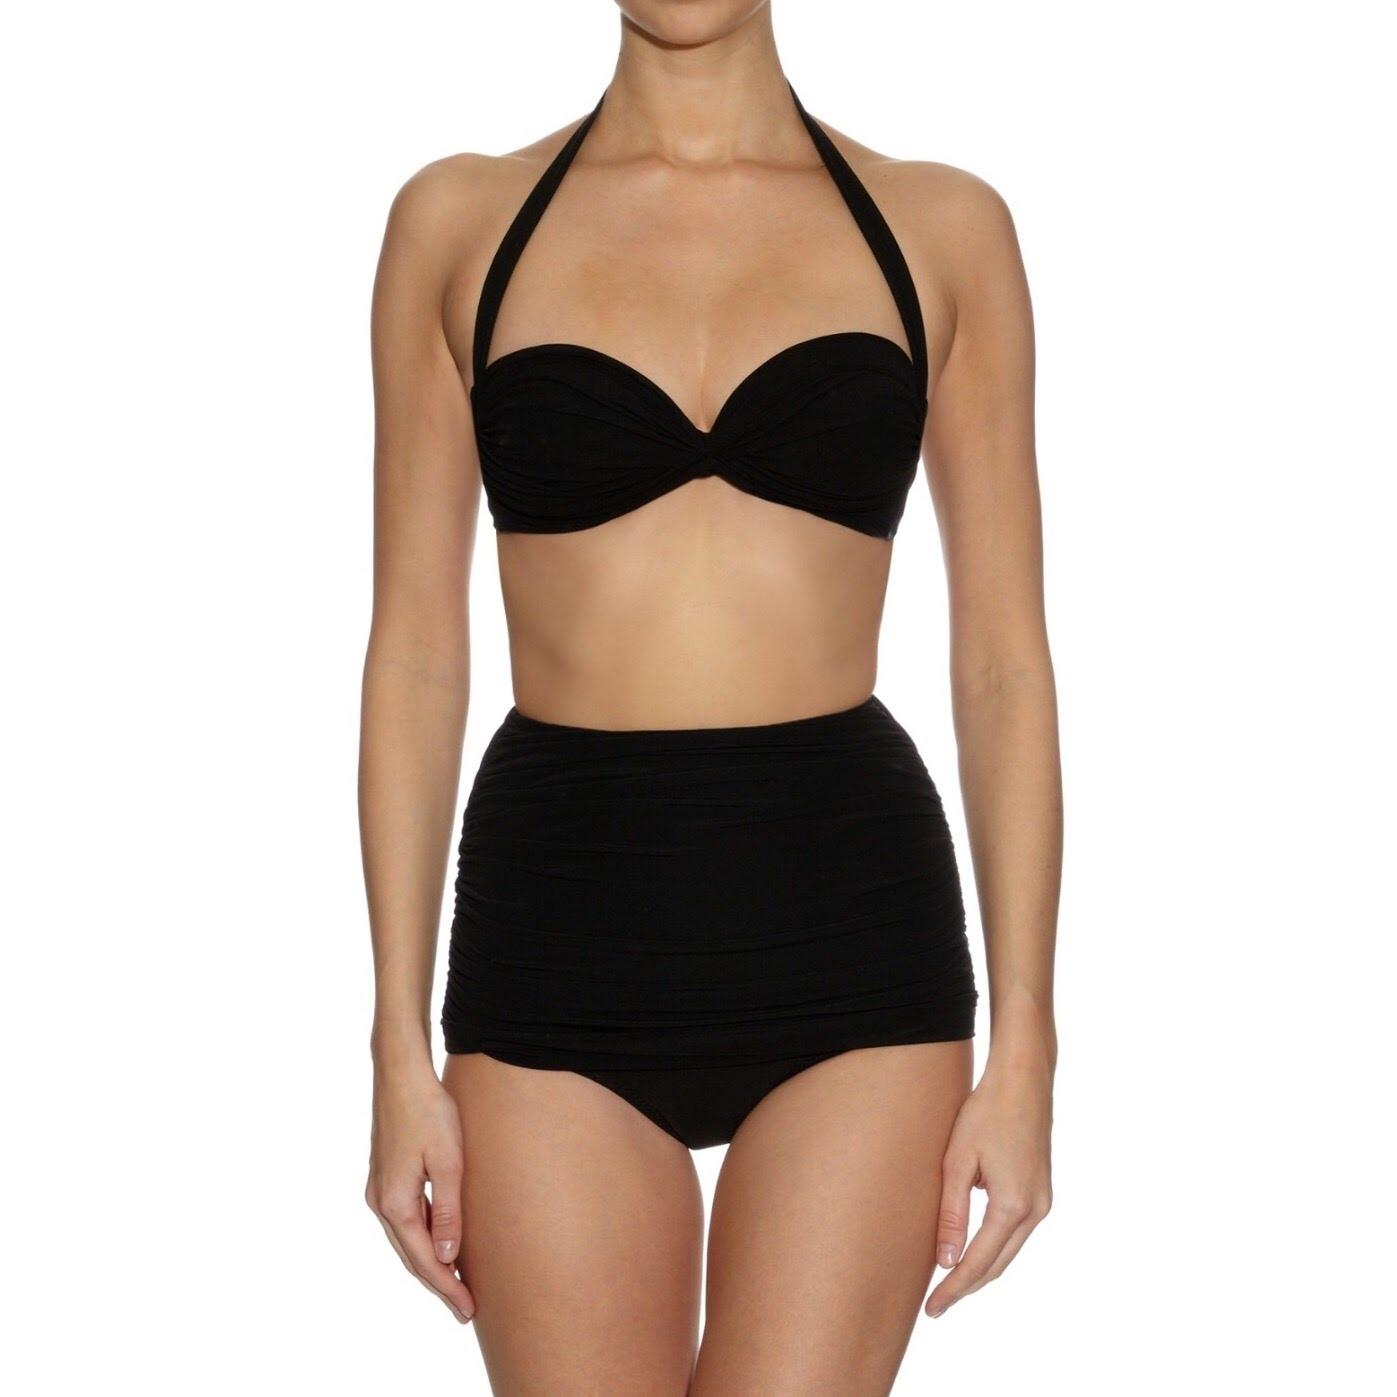 Limited Edition Sale Online Bill ruched bikini bra Norma Kamali Buy Cheap 2018 Unisex Cheap Sale 2018 Newest Factory Outlet Cheap Online xv1RkmPdGa